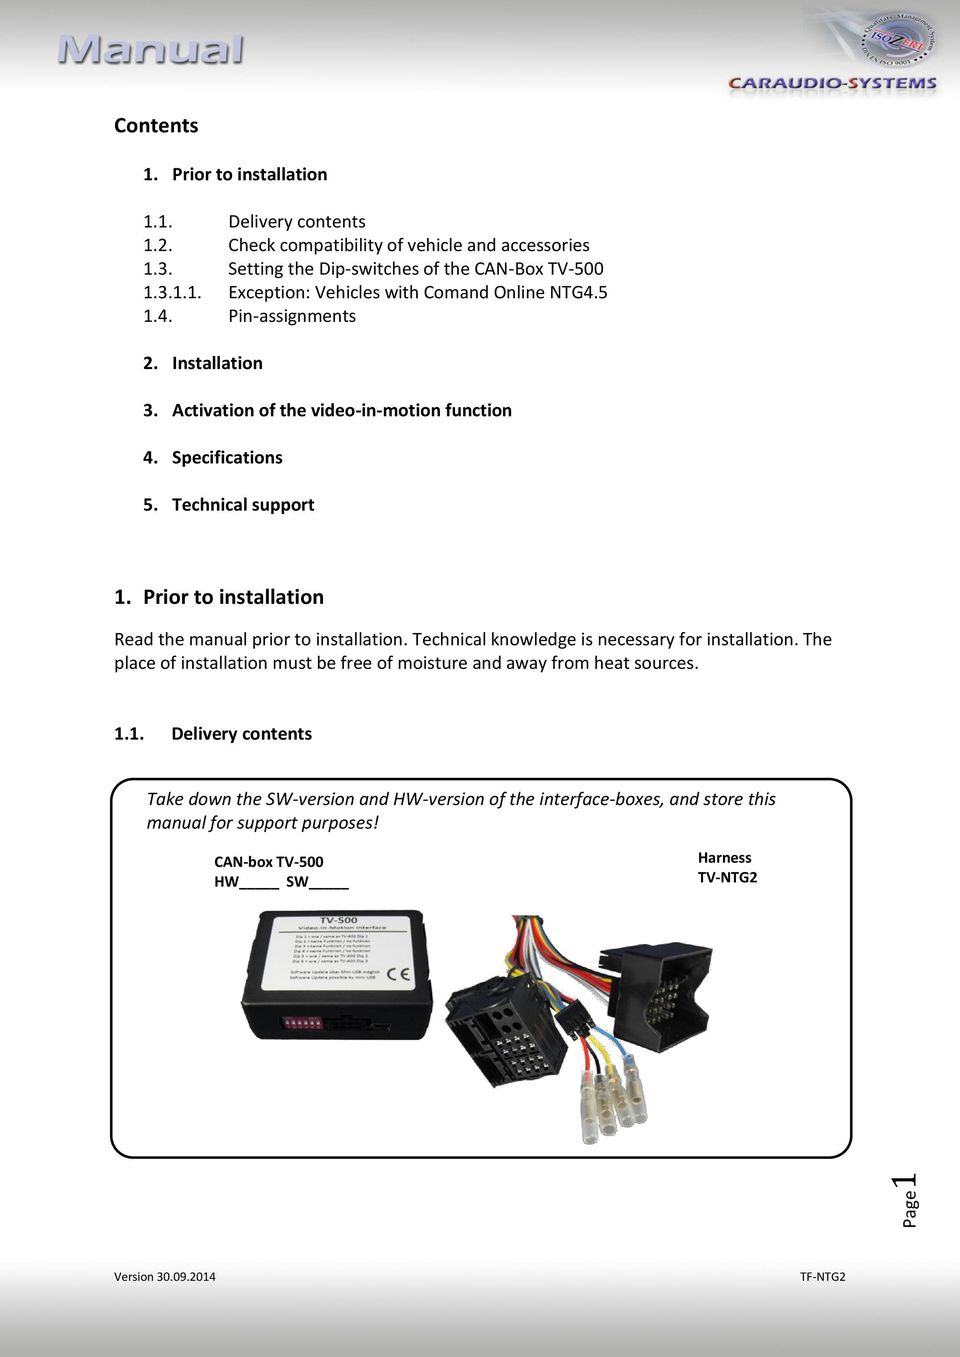 Prior to installation Read the manual prior to installation. Technical  knowledge is necessary for installation